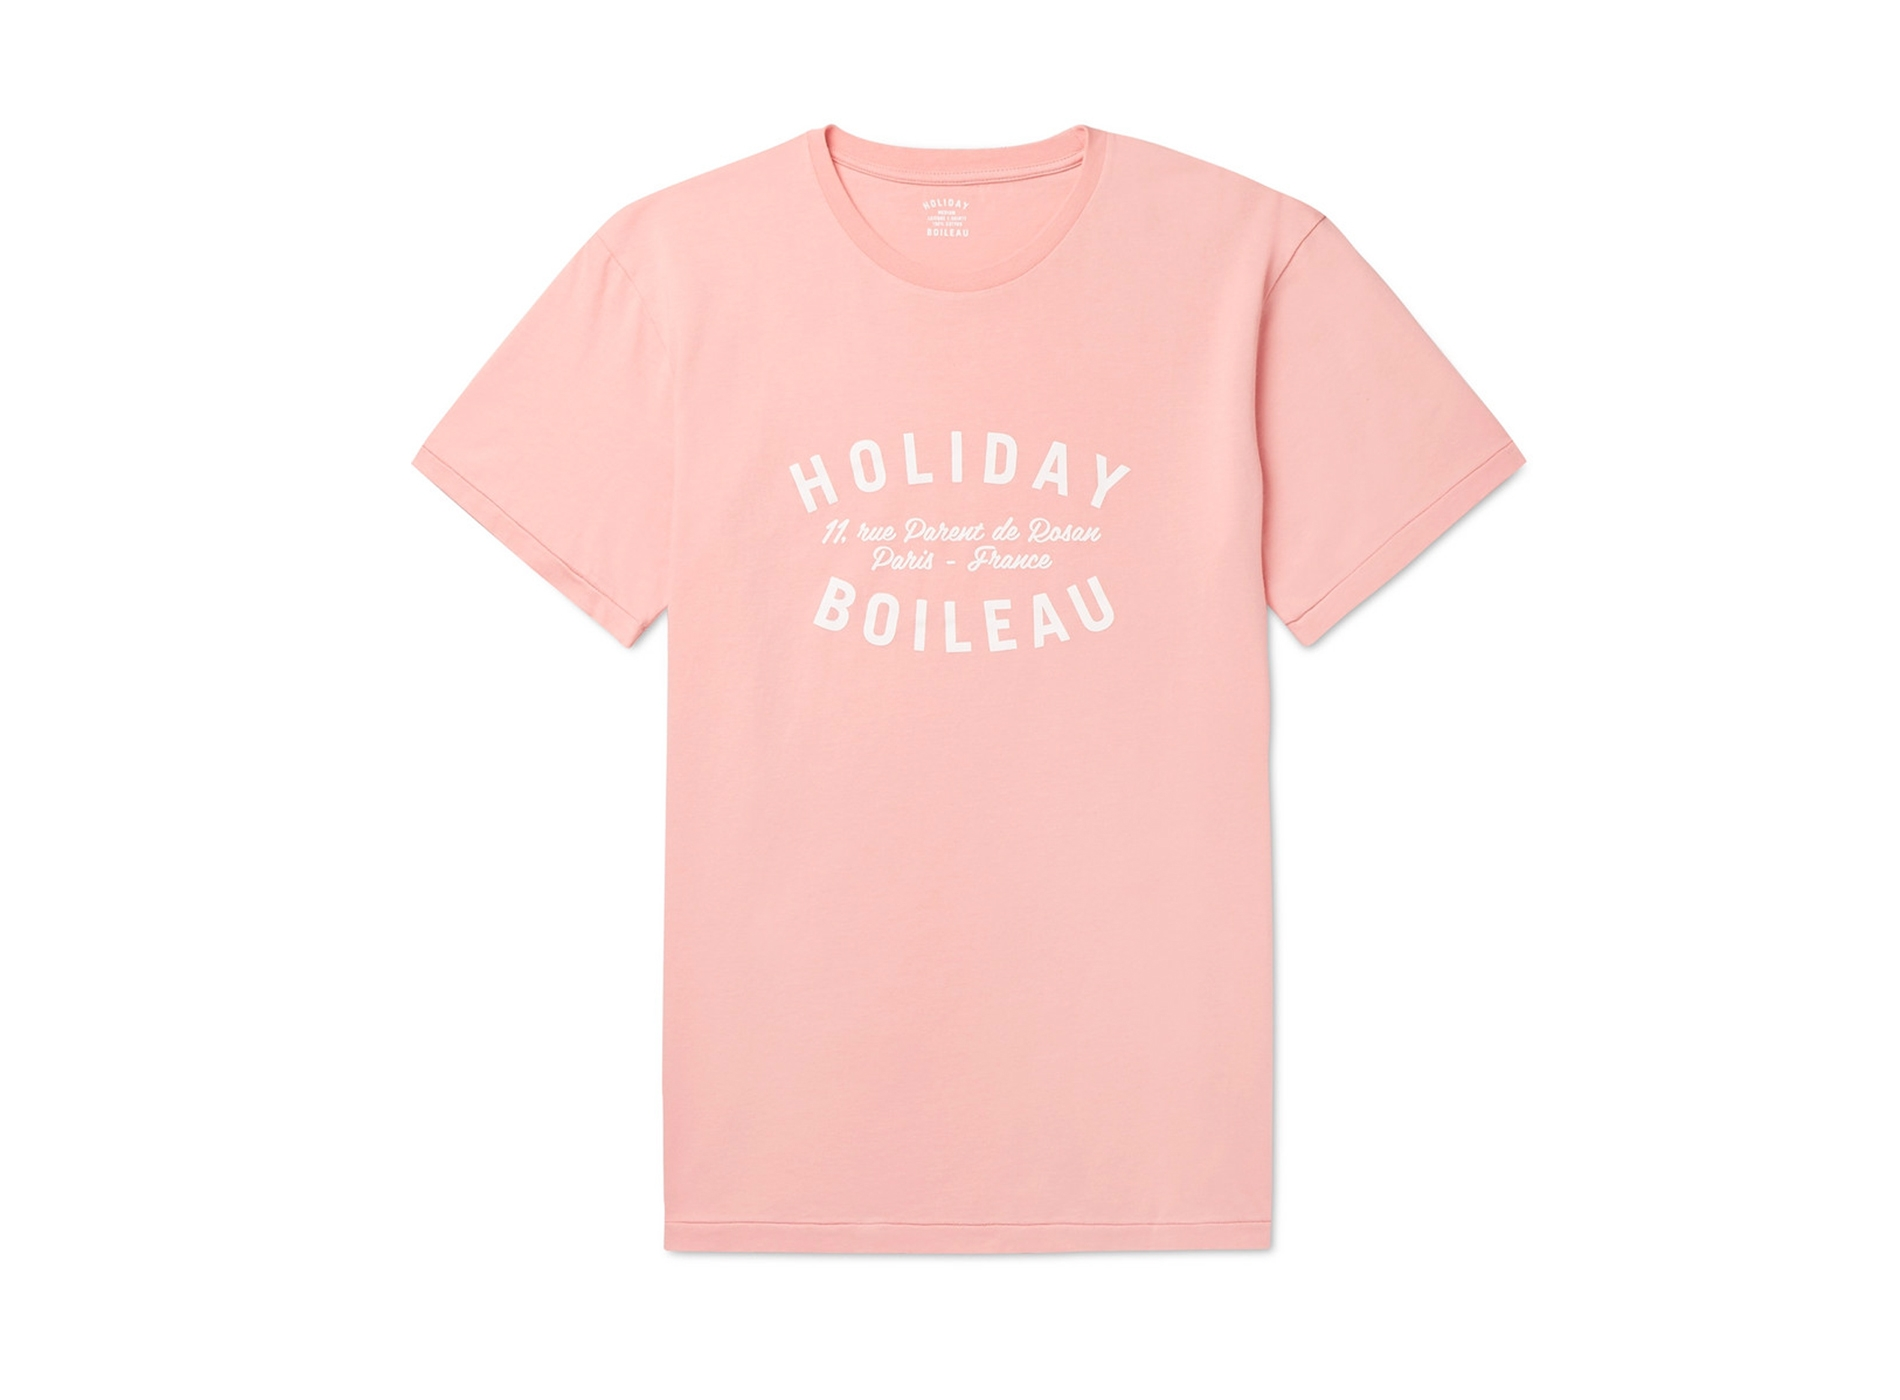 Travel Essentials Essentiels de Voyage Malibu T-Shirt Holiday Boileau